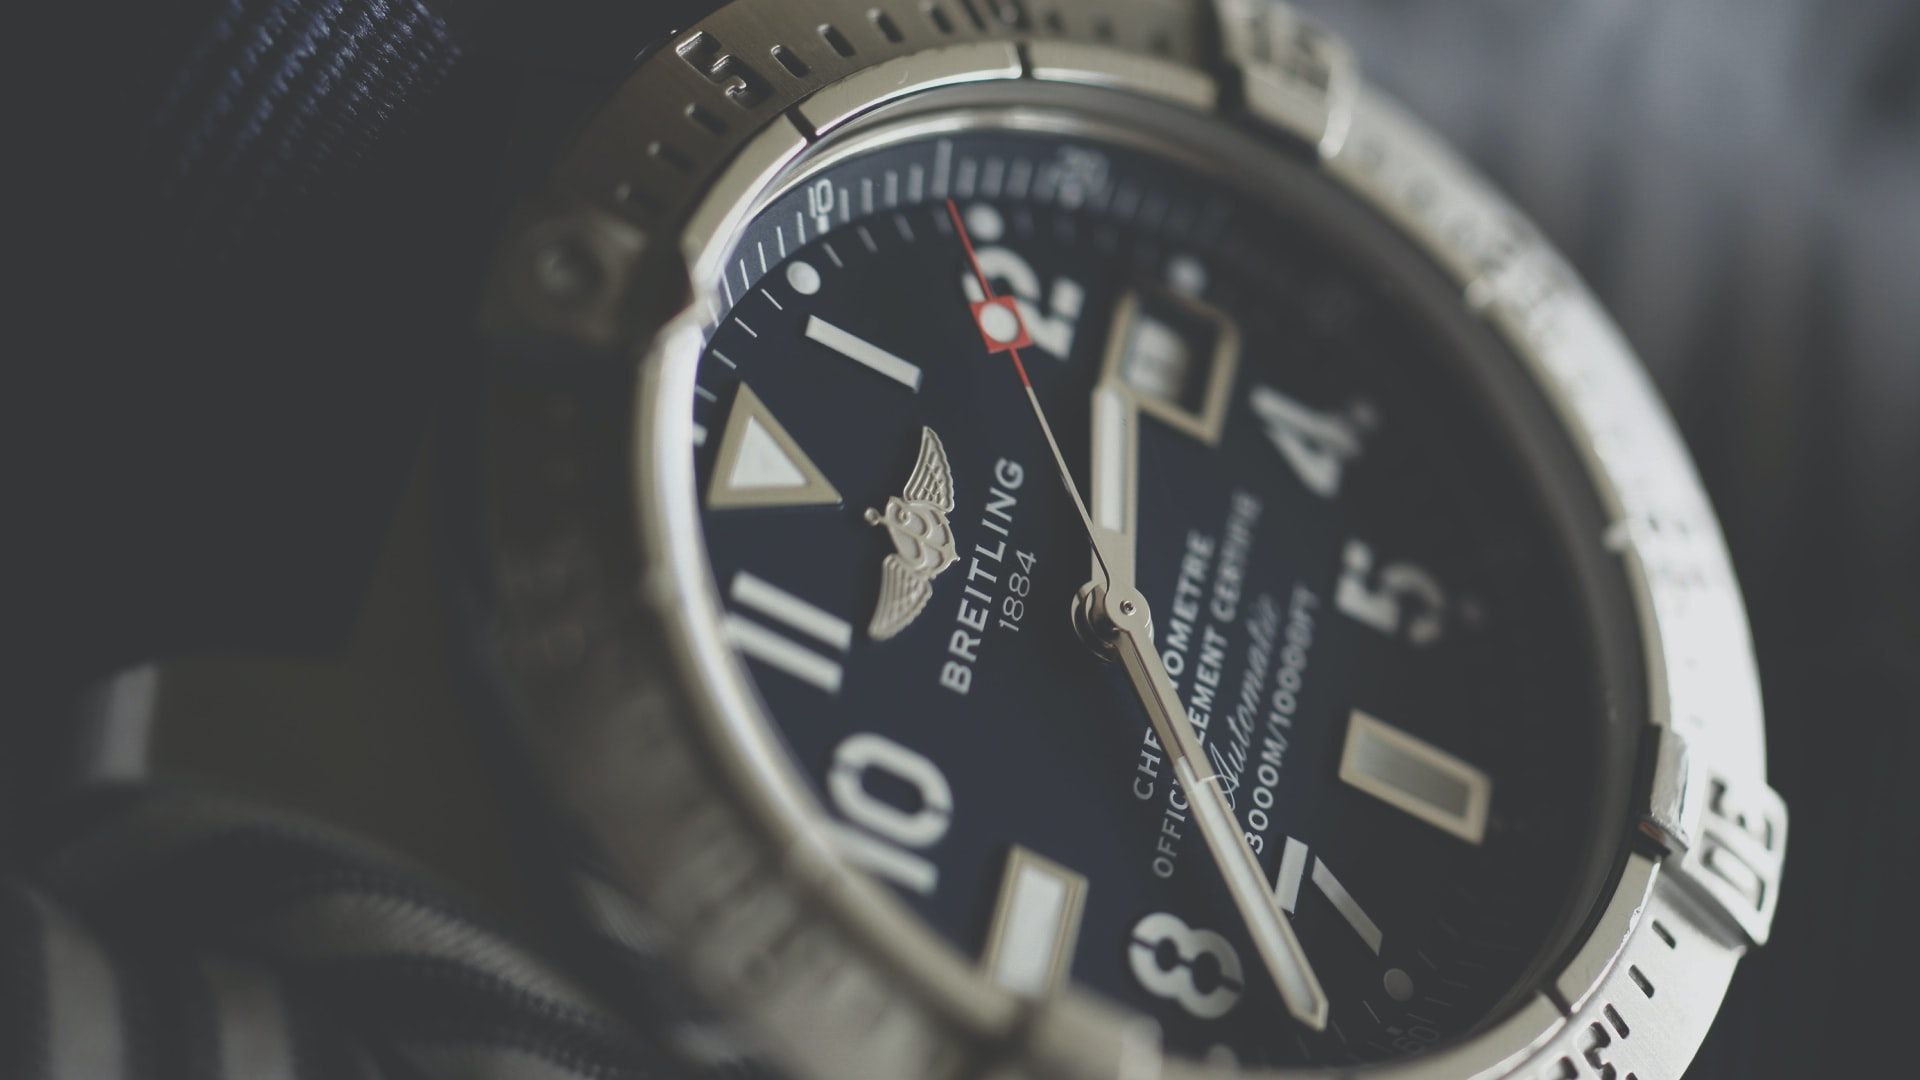 The face of an elegant Breitling watch in close-up